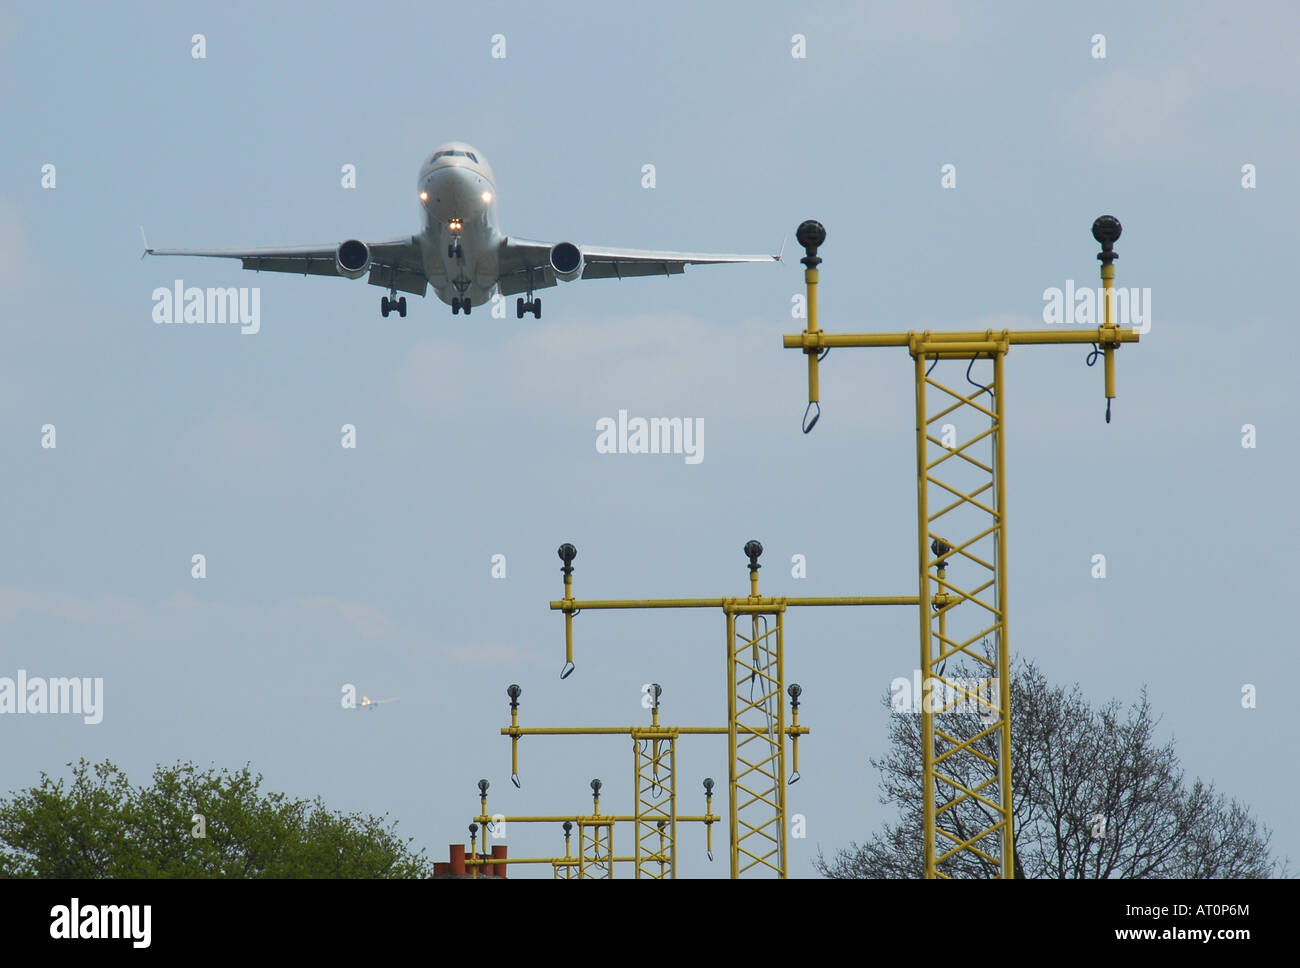 A widebody airliner over the ILS on final approach to Heathrow airport London - Stock Image